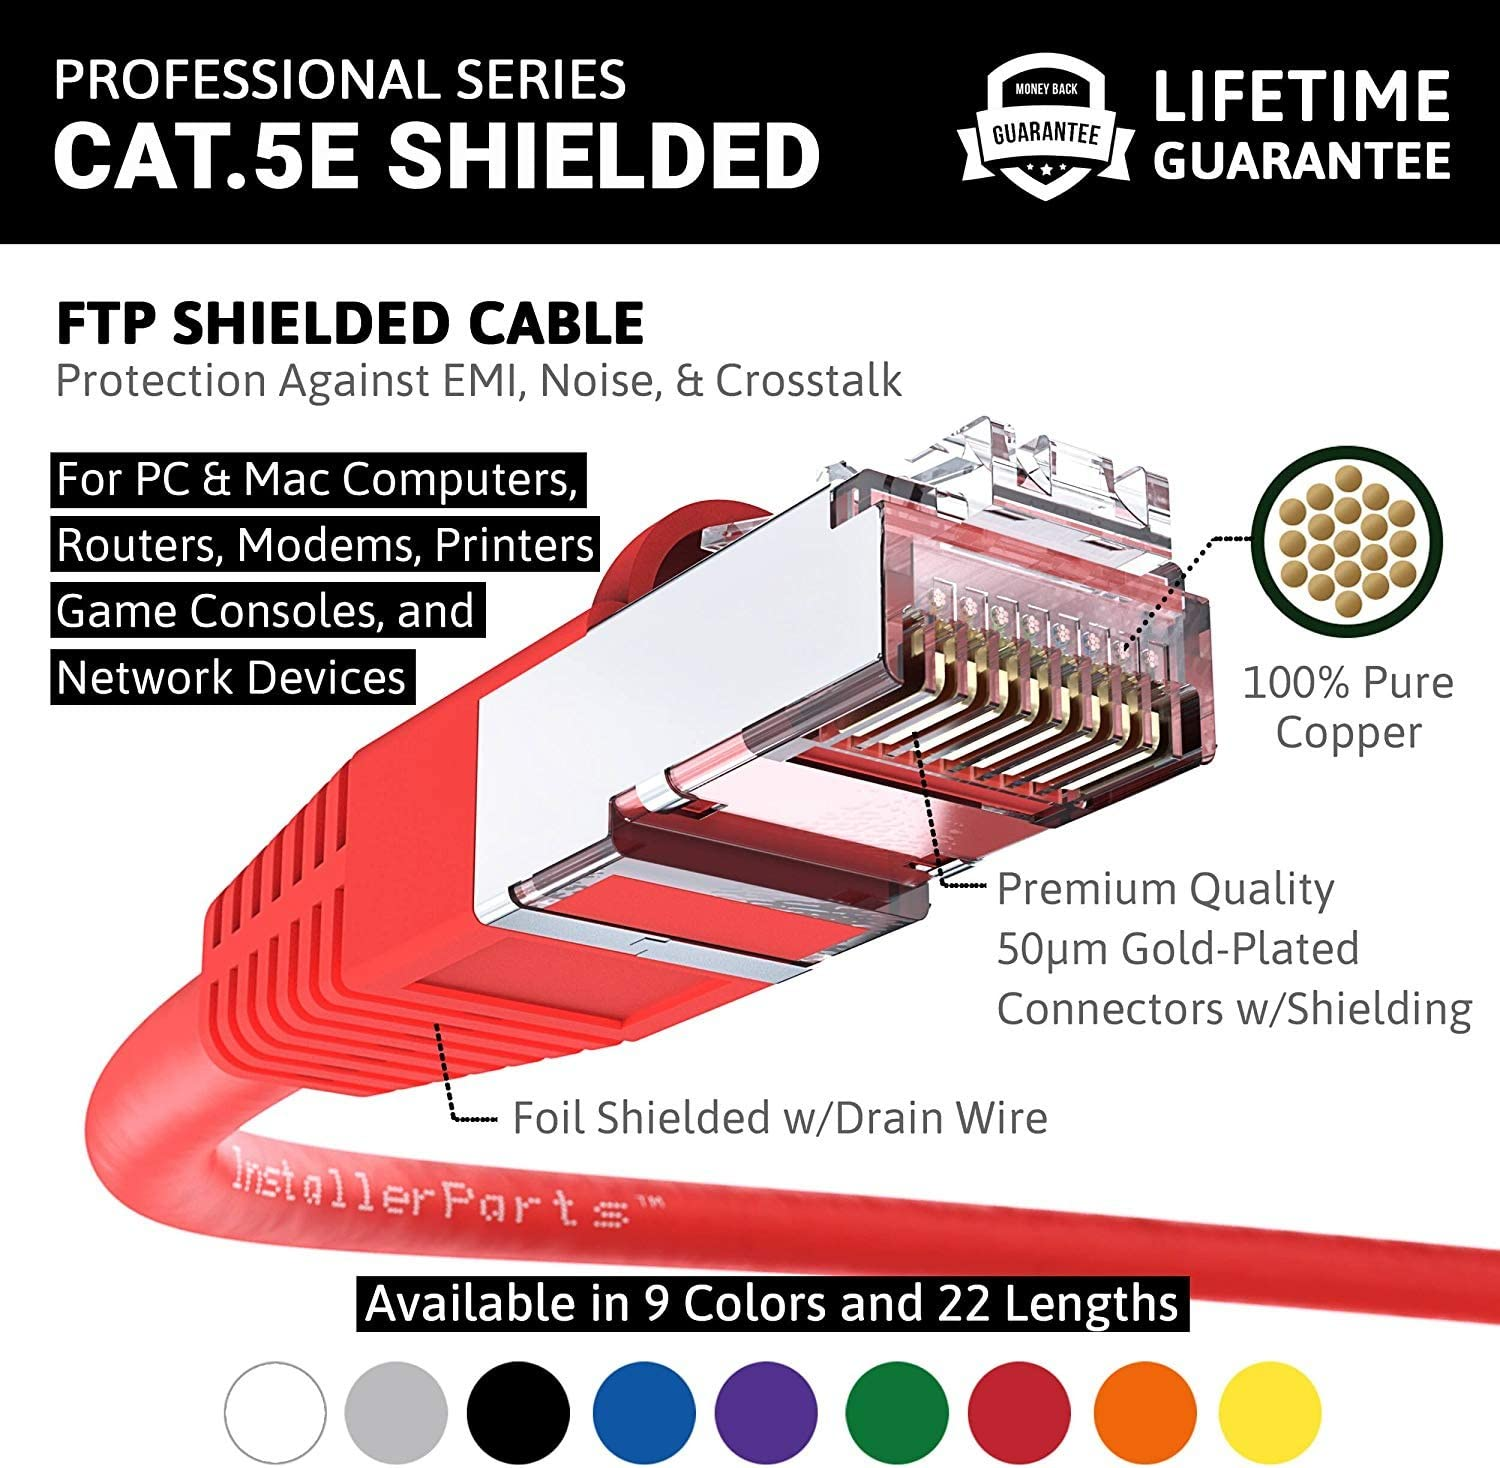 Booted 1 FT 1Gigabit//Sec Network//Internet Cable 100 Pack Red Ethernet Cable CAT5E Cable Shielded FTP 350MHZ InstallerParts Professional Series